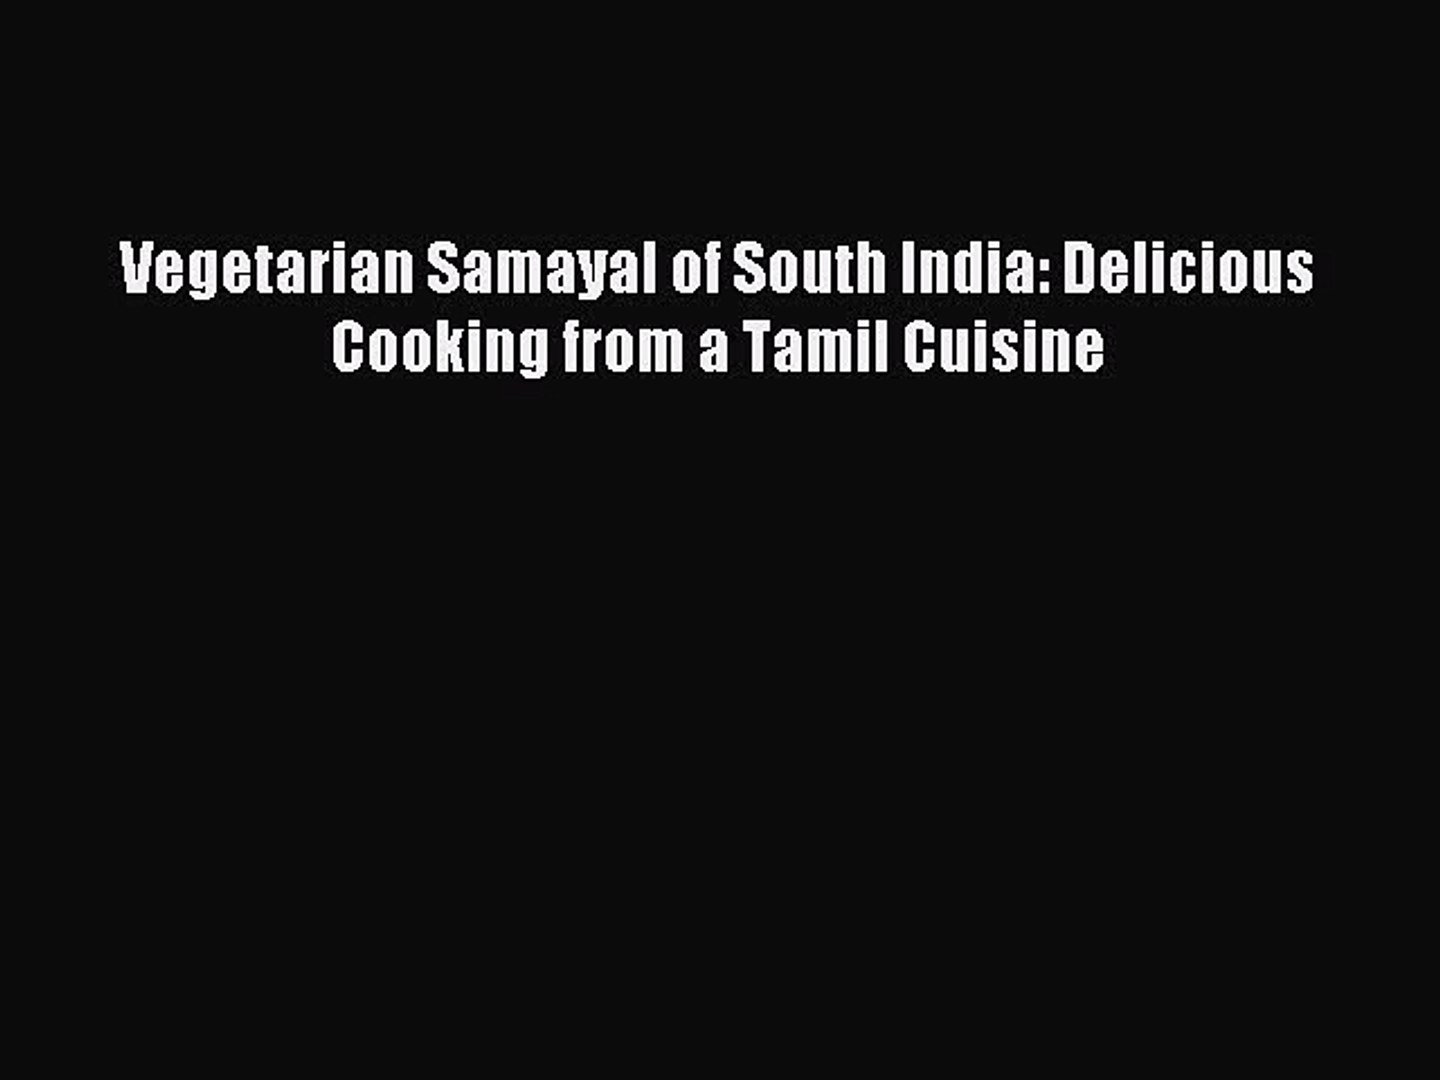 Download Vegetarian Samayal of South India: Delicious Cooking from a Tamil Cuisine Ebook Online